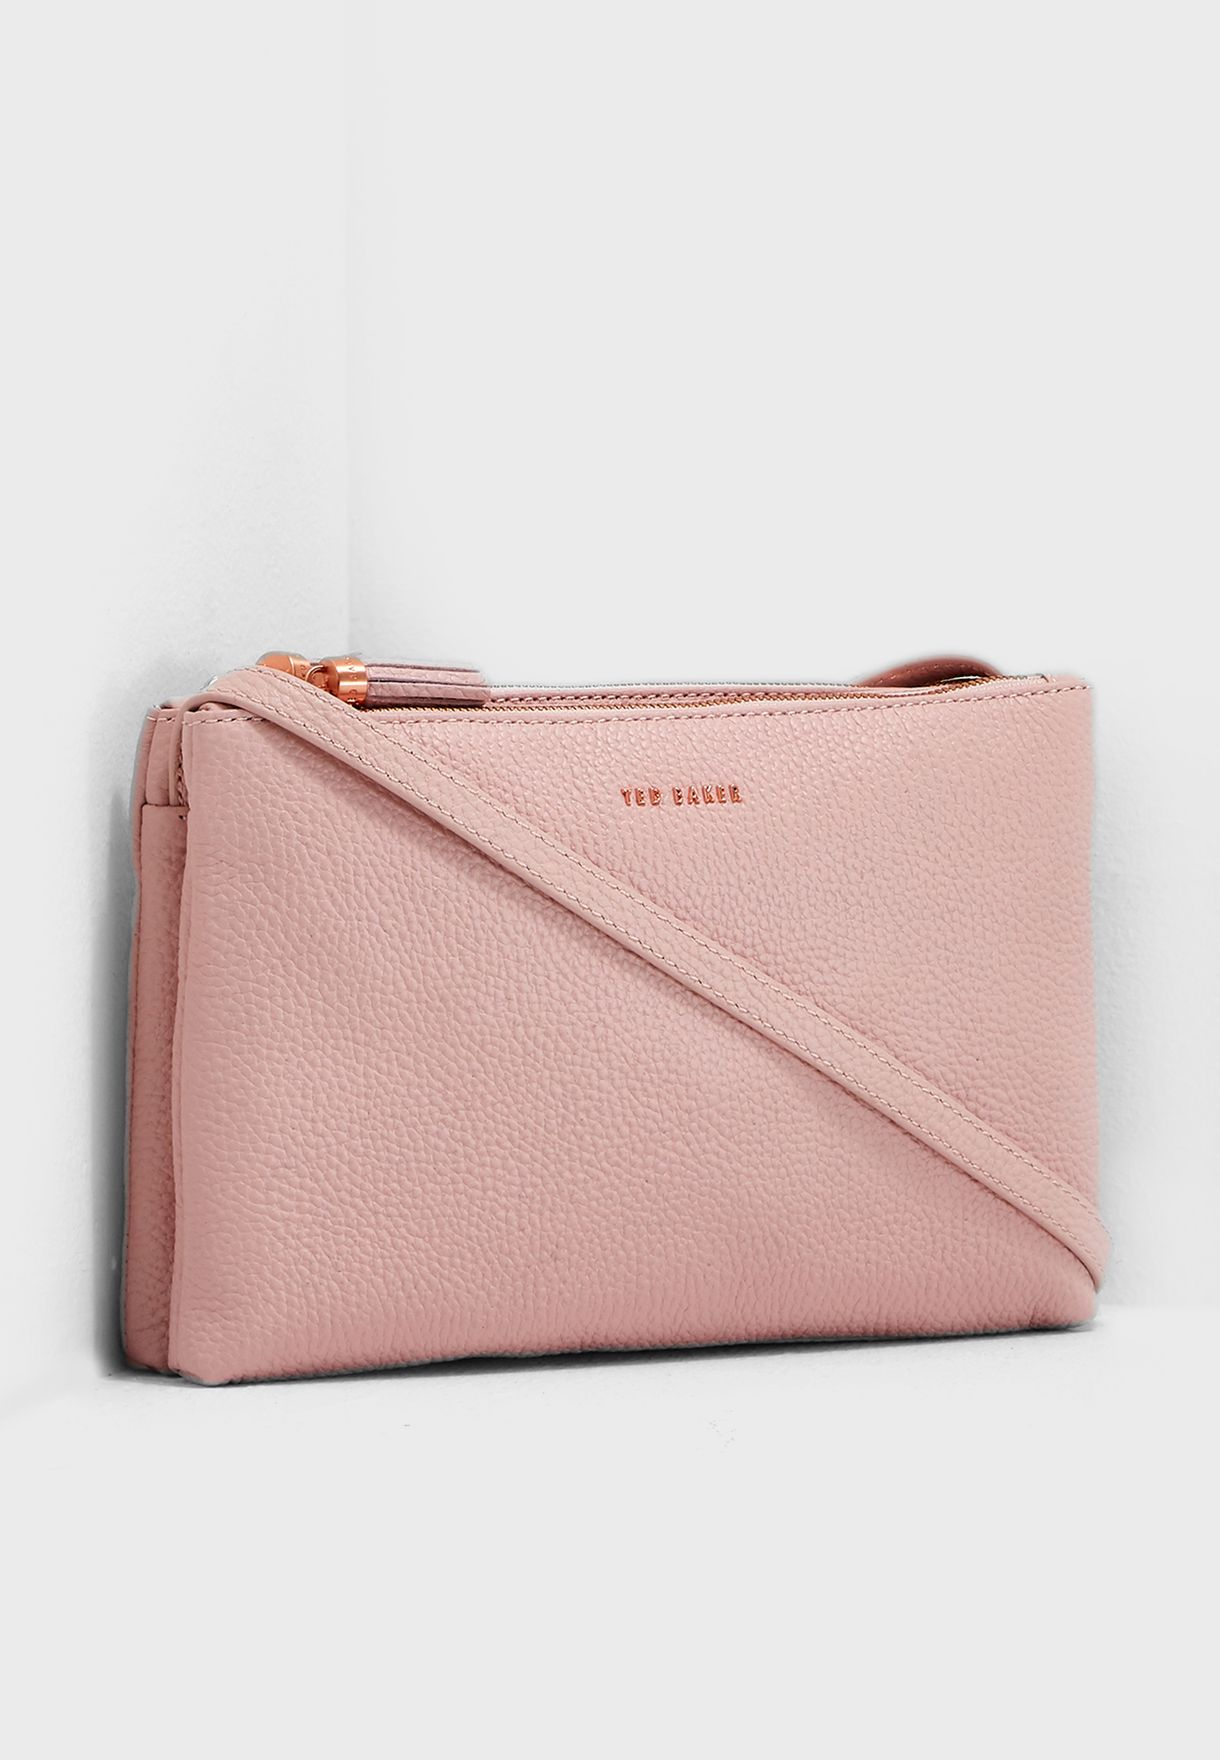 f1559e9dff3 Shop Ted baker pink Maceyy Double Zipped Crossbody 147576 for Women ...